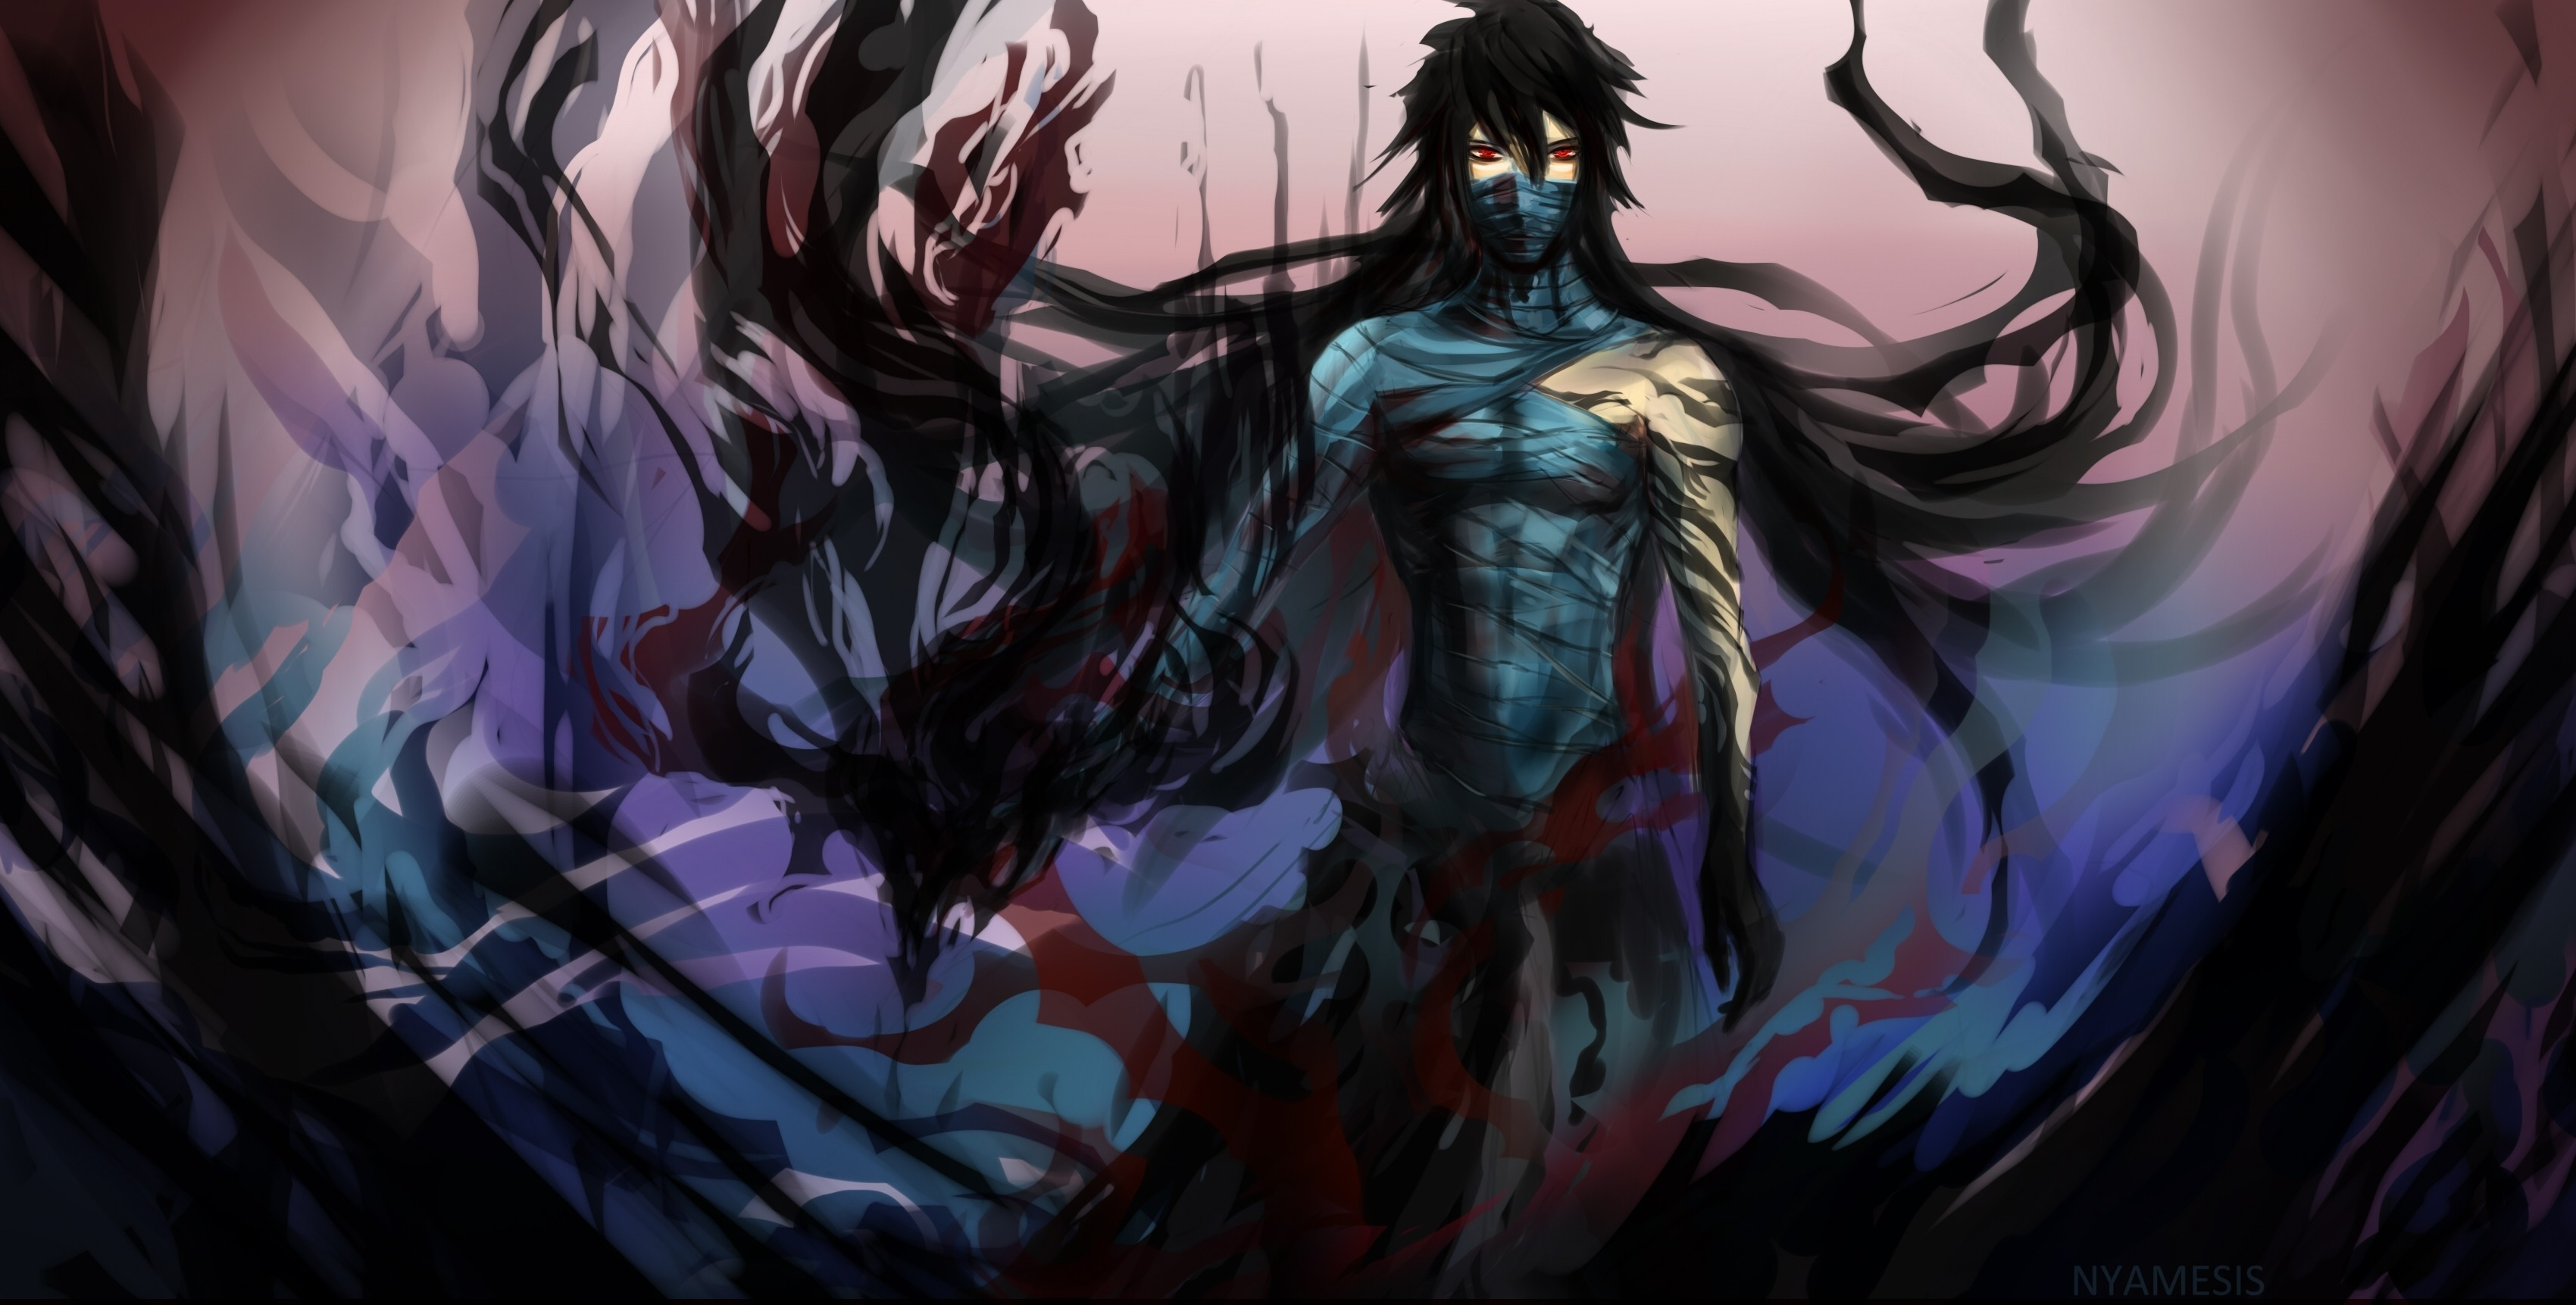 3400x1723 Explore Hd Picture, Wallpaper Art, and more! Image result for warrior anime  male